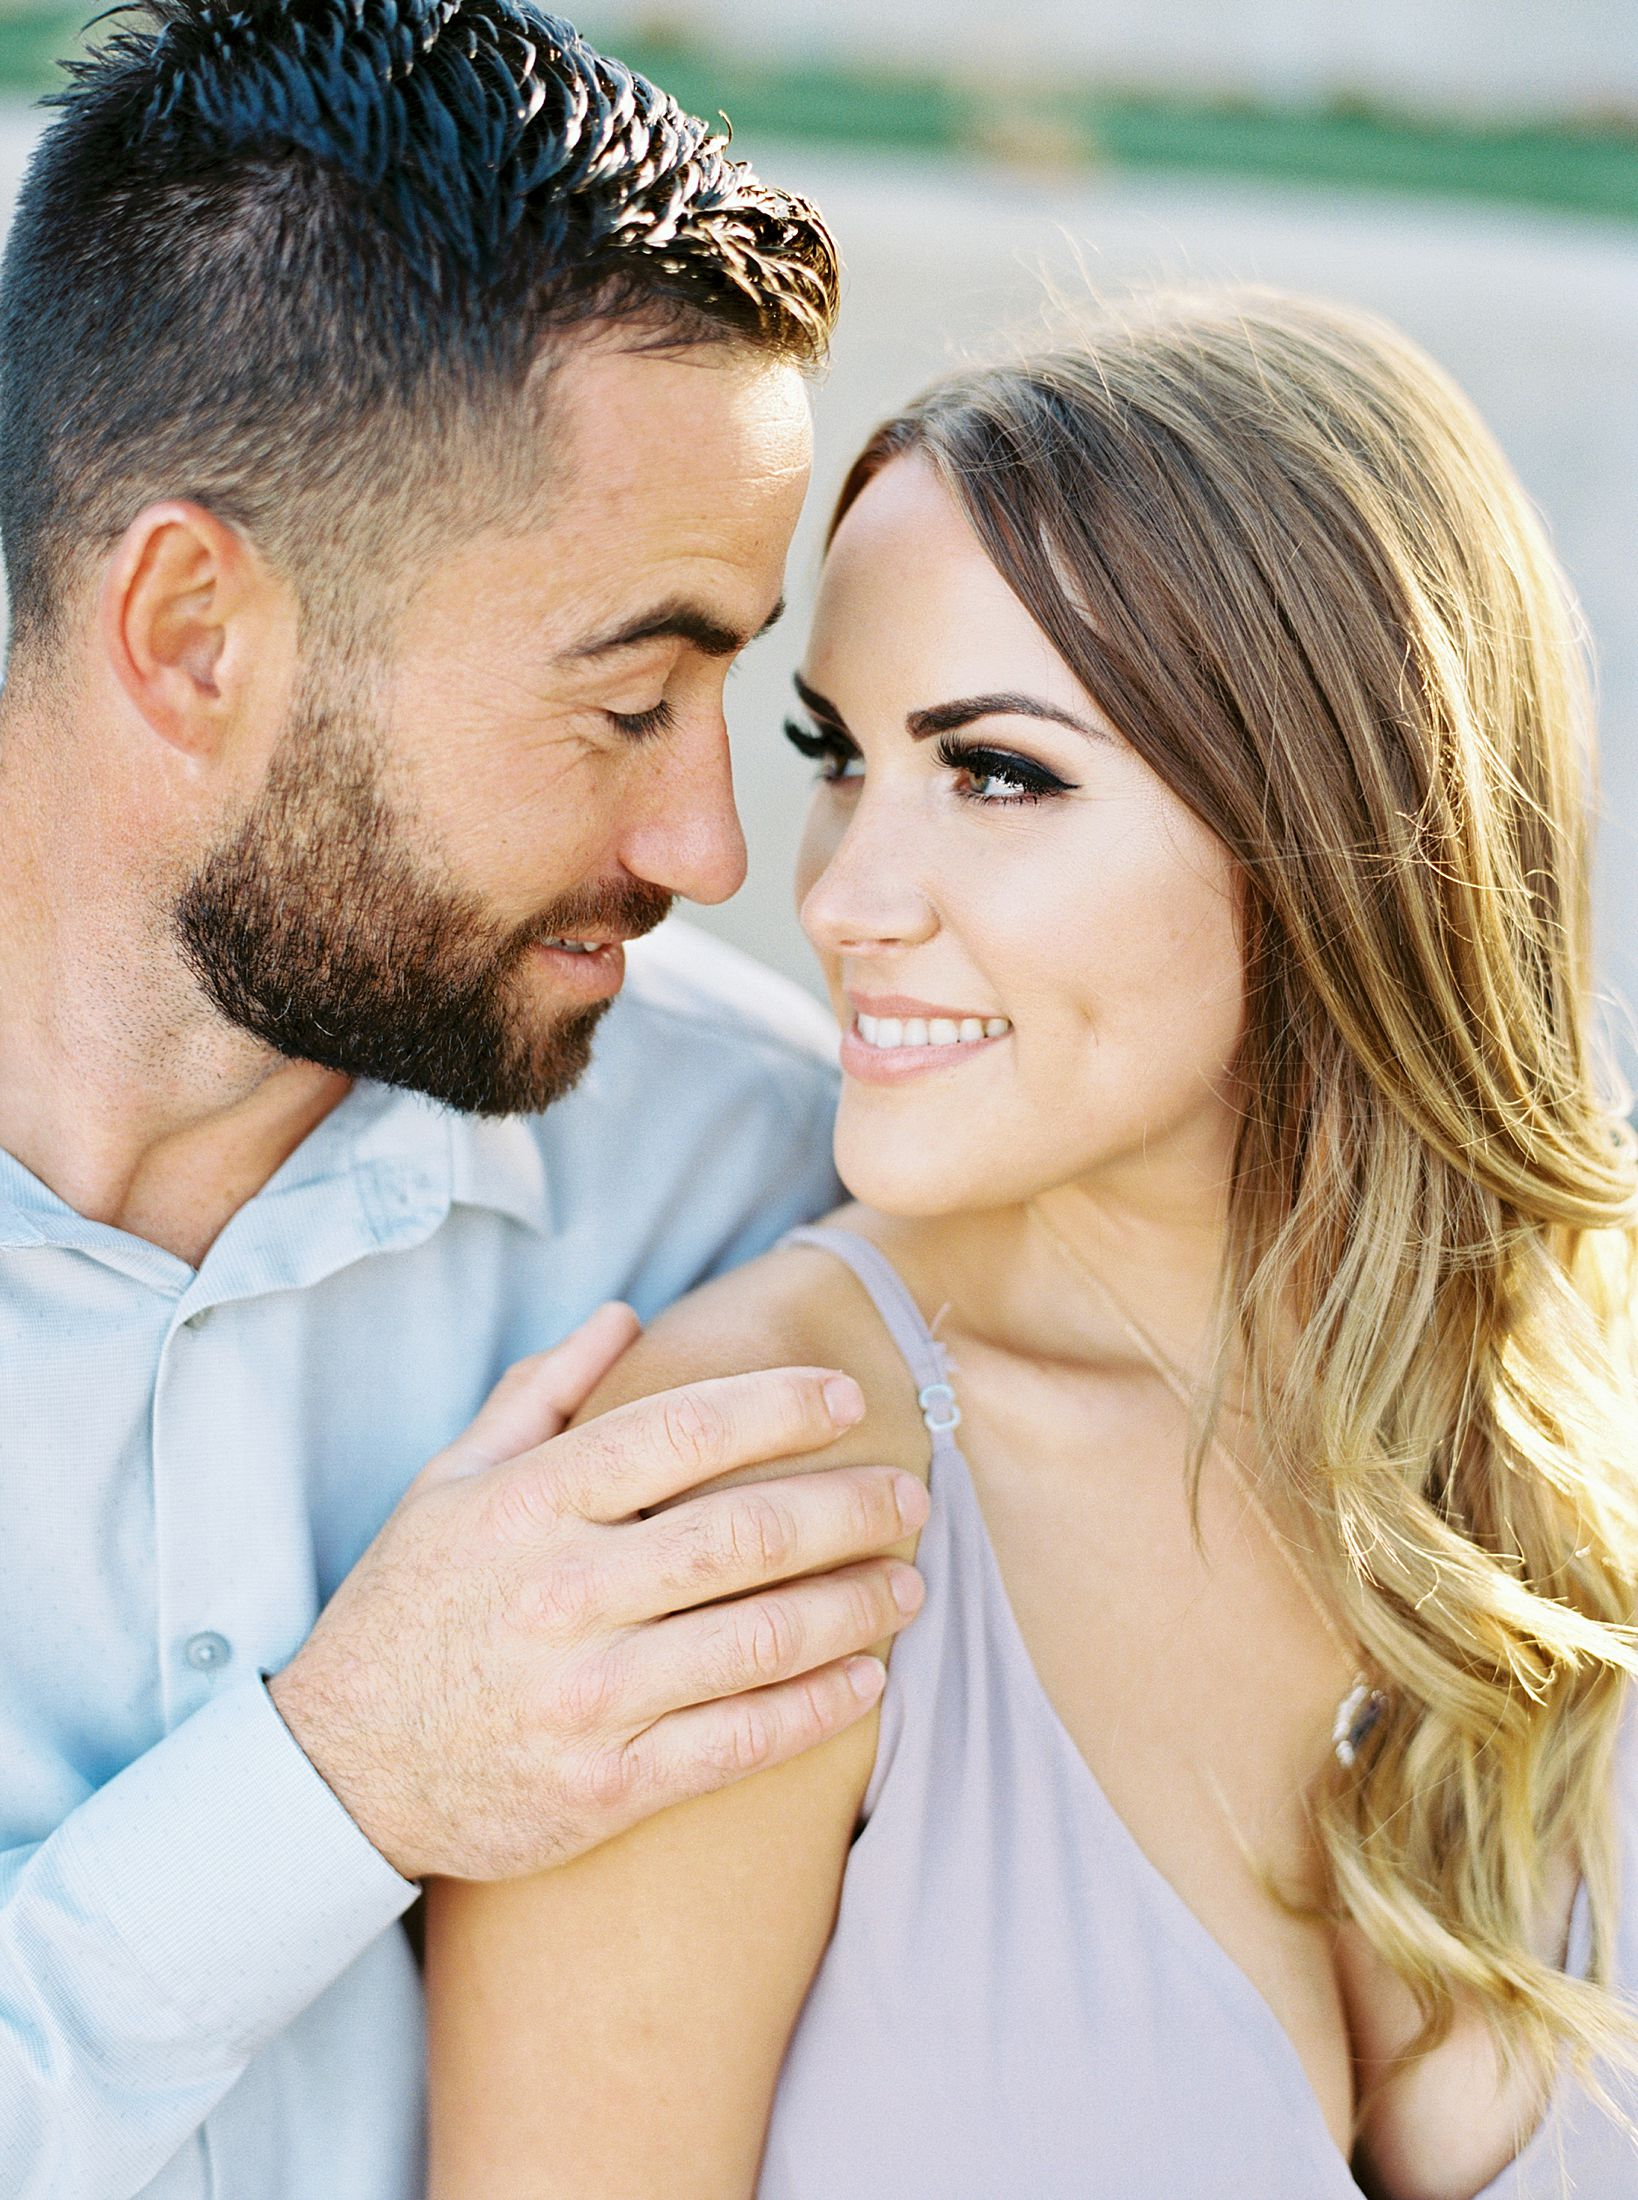 Helwig Winery Engagement Session - Steffanie and Rich - Jenn Robirds Events - Ashley Baumgartner - Sacramento Wedding Photographer - Private Estate Wedding Photographer - Helwig WInery Wedding_0096.jpg